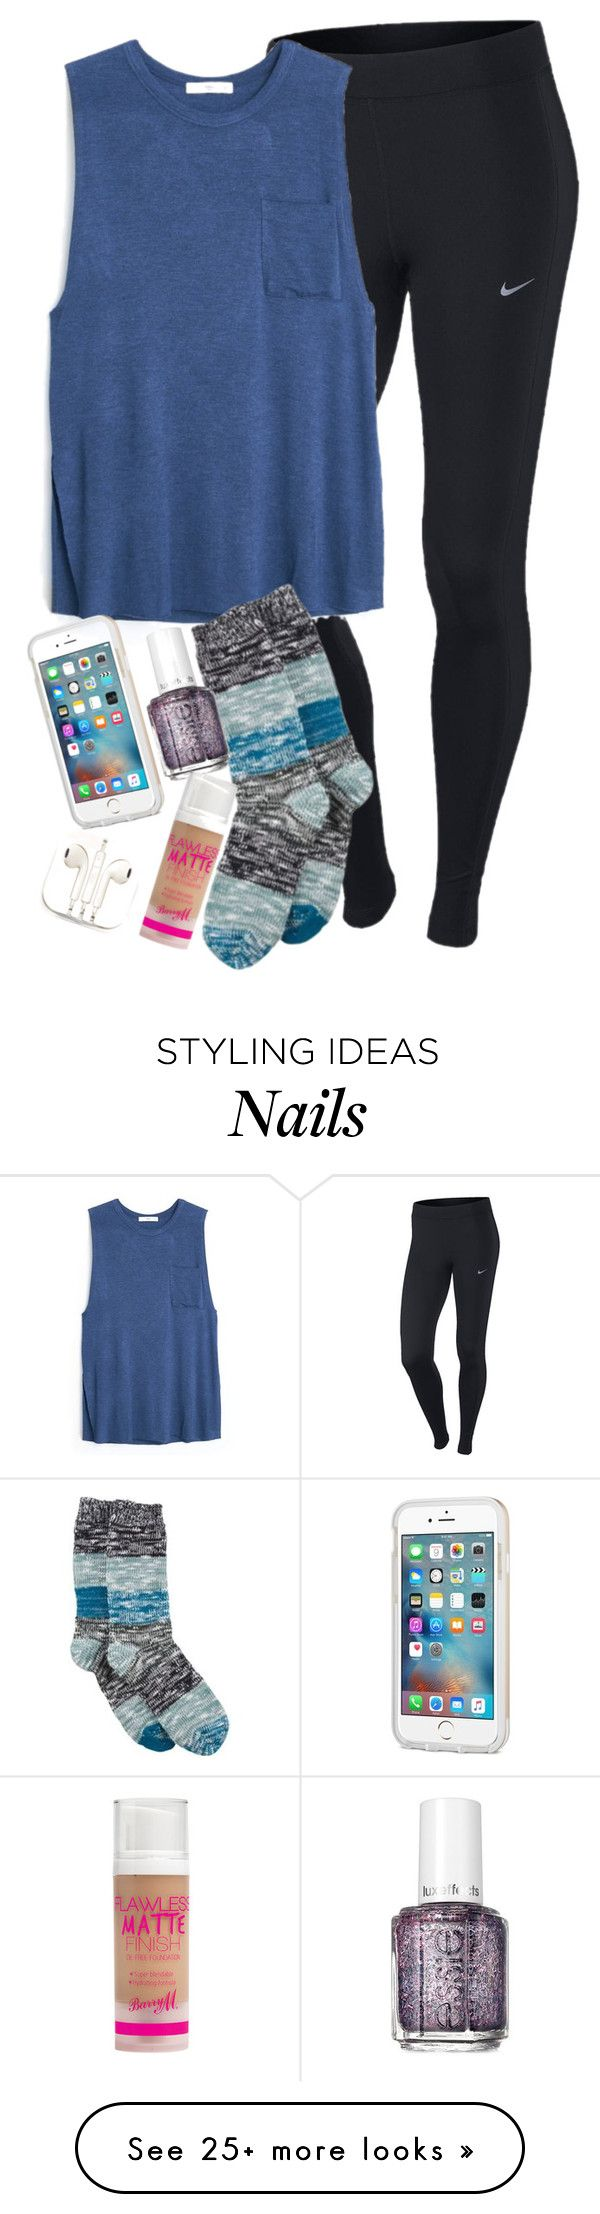 """""""i just wanna be okay be okay be okay i just wanna be okay today"""" by elizabethannee on Polyvore featuring NIKE, MANGO, Hue, Essie, Barry M, PhunkeeTree, women's clothing, women's fashion, women and female"""